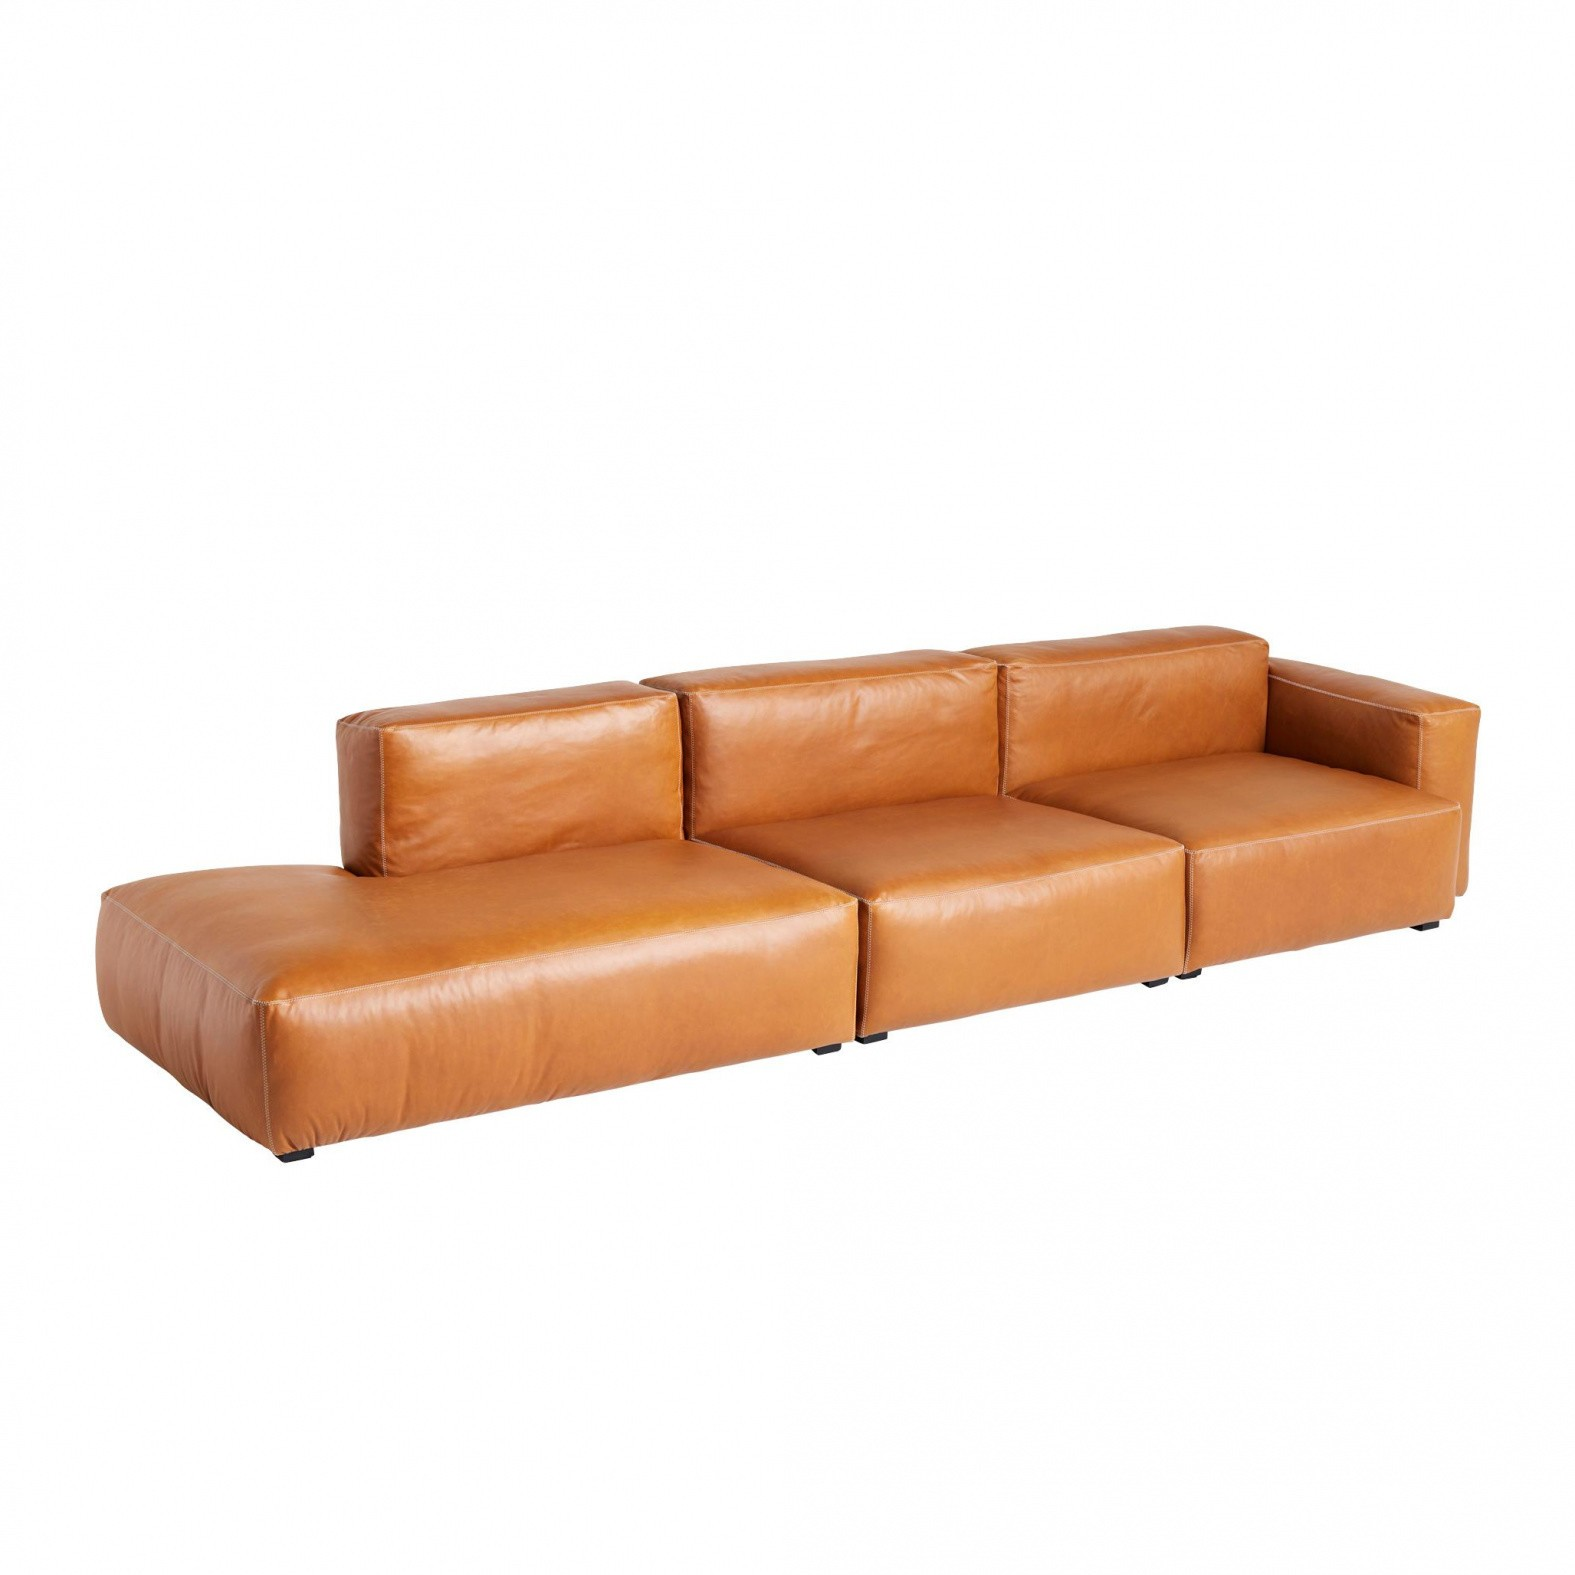 HAY Mags Soft 3 Seater Leather Sofa 338x9.5x67cm   AmbienteDirect